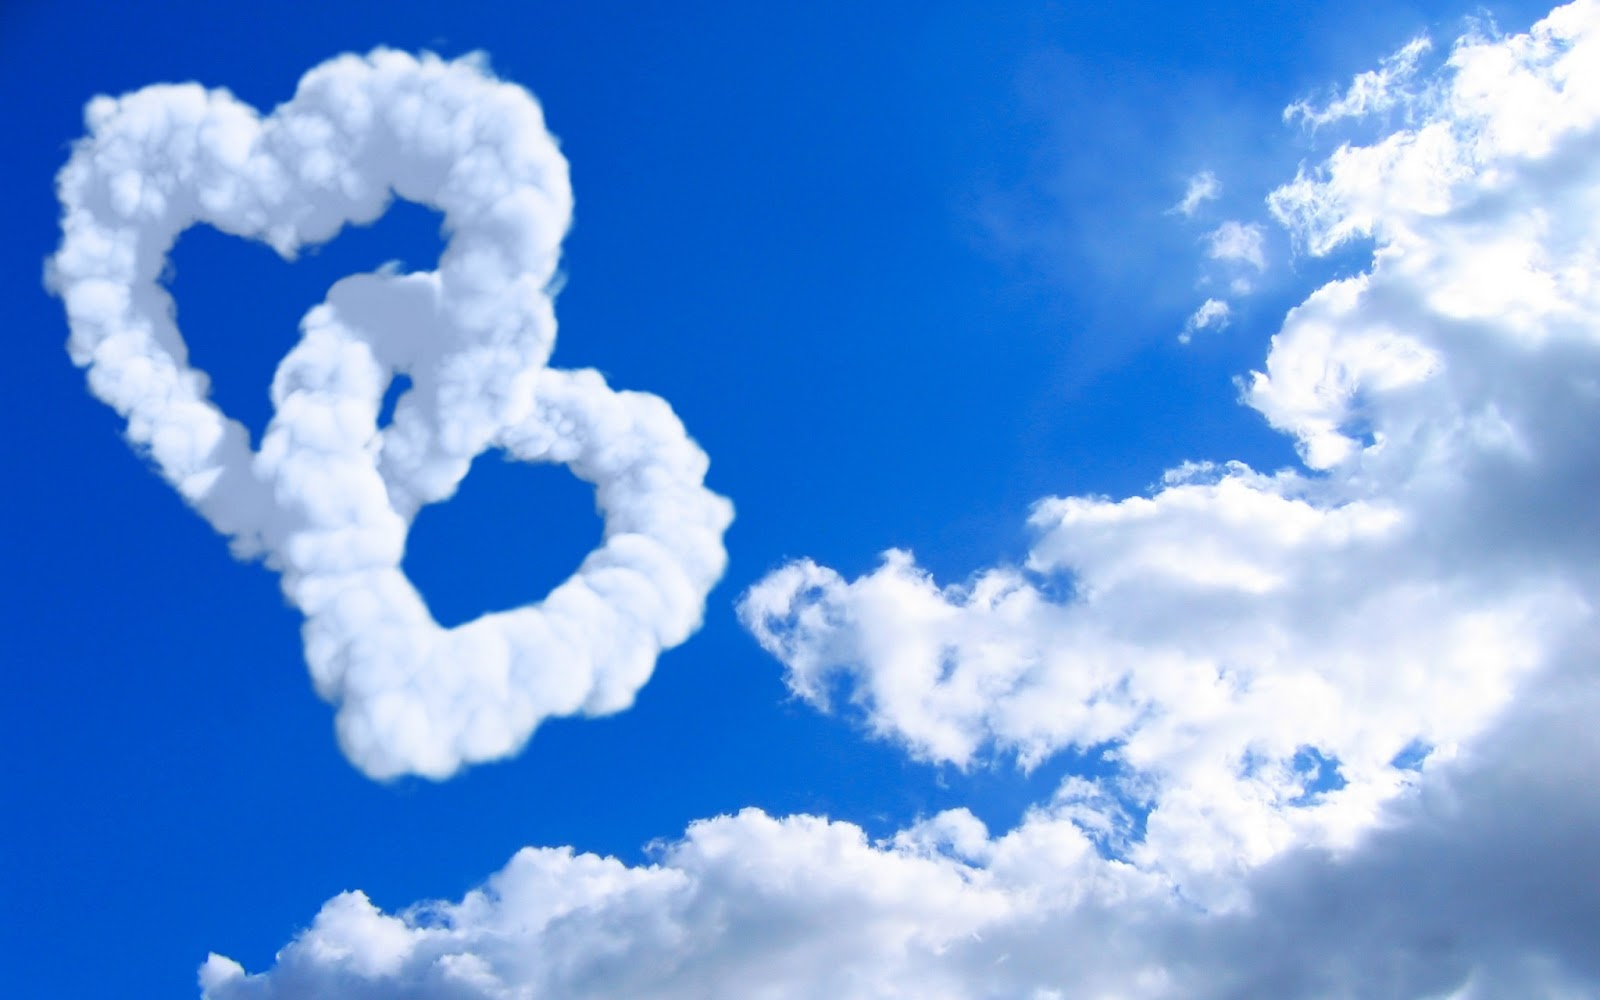 3d Love Live Wallpaper For Pc : Free Wallpaper Dekstop: 3d love with clouds wallpaper, wallpaper for desktop